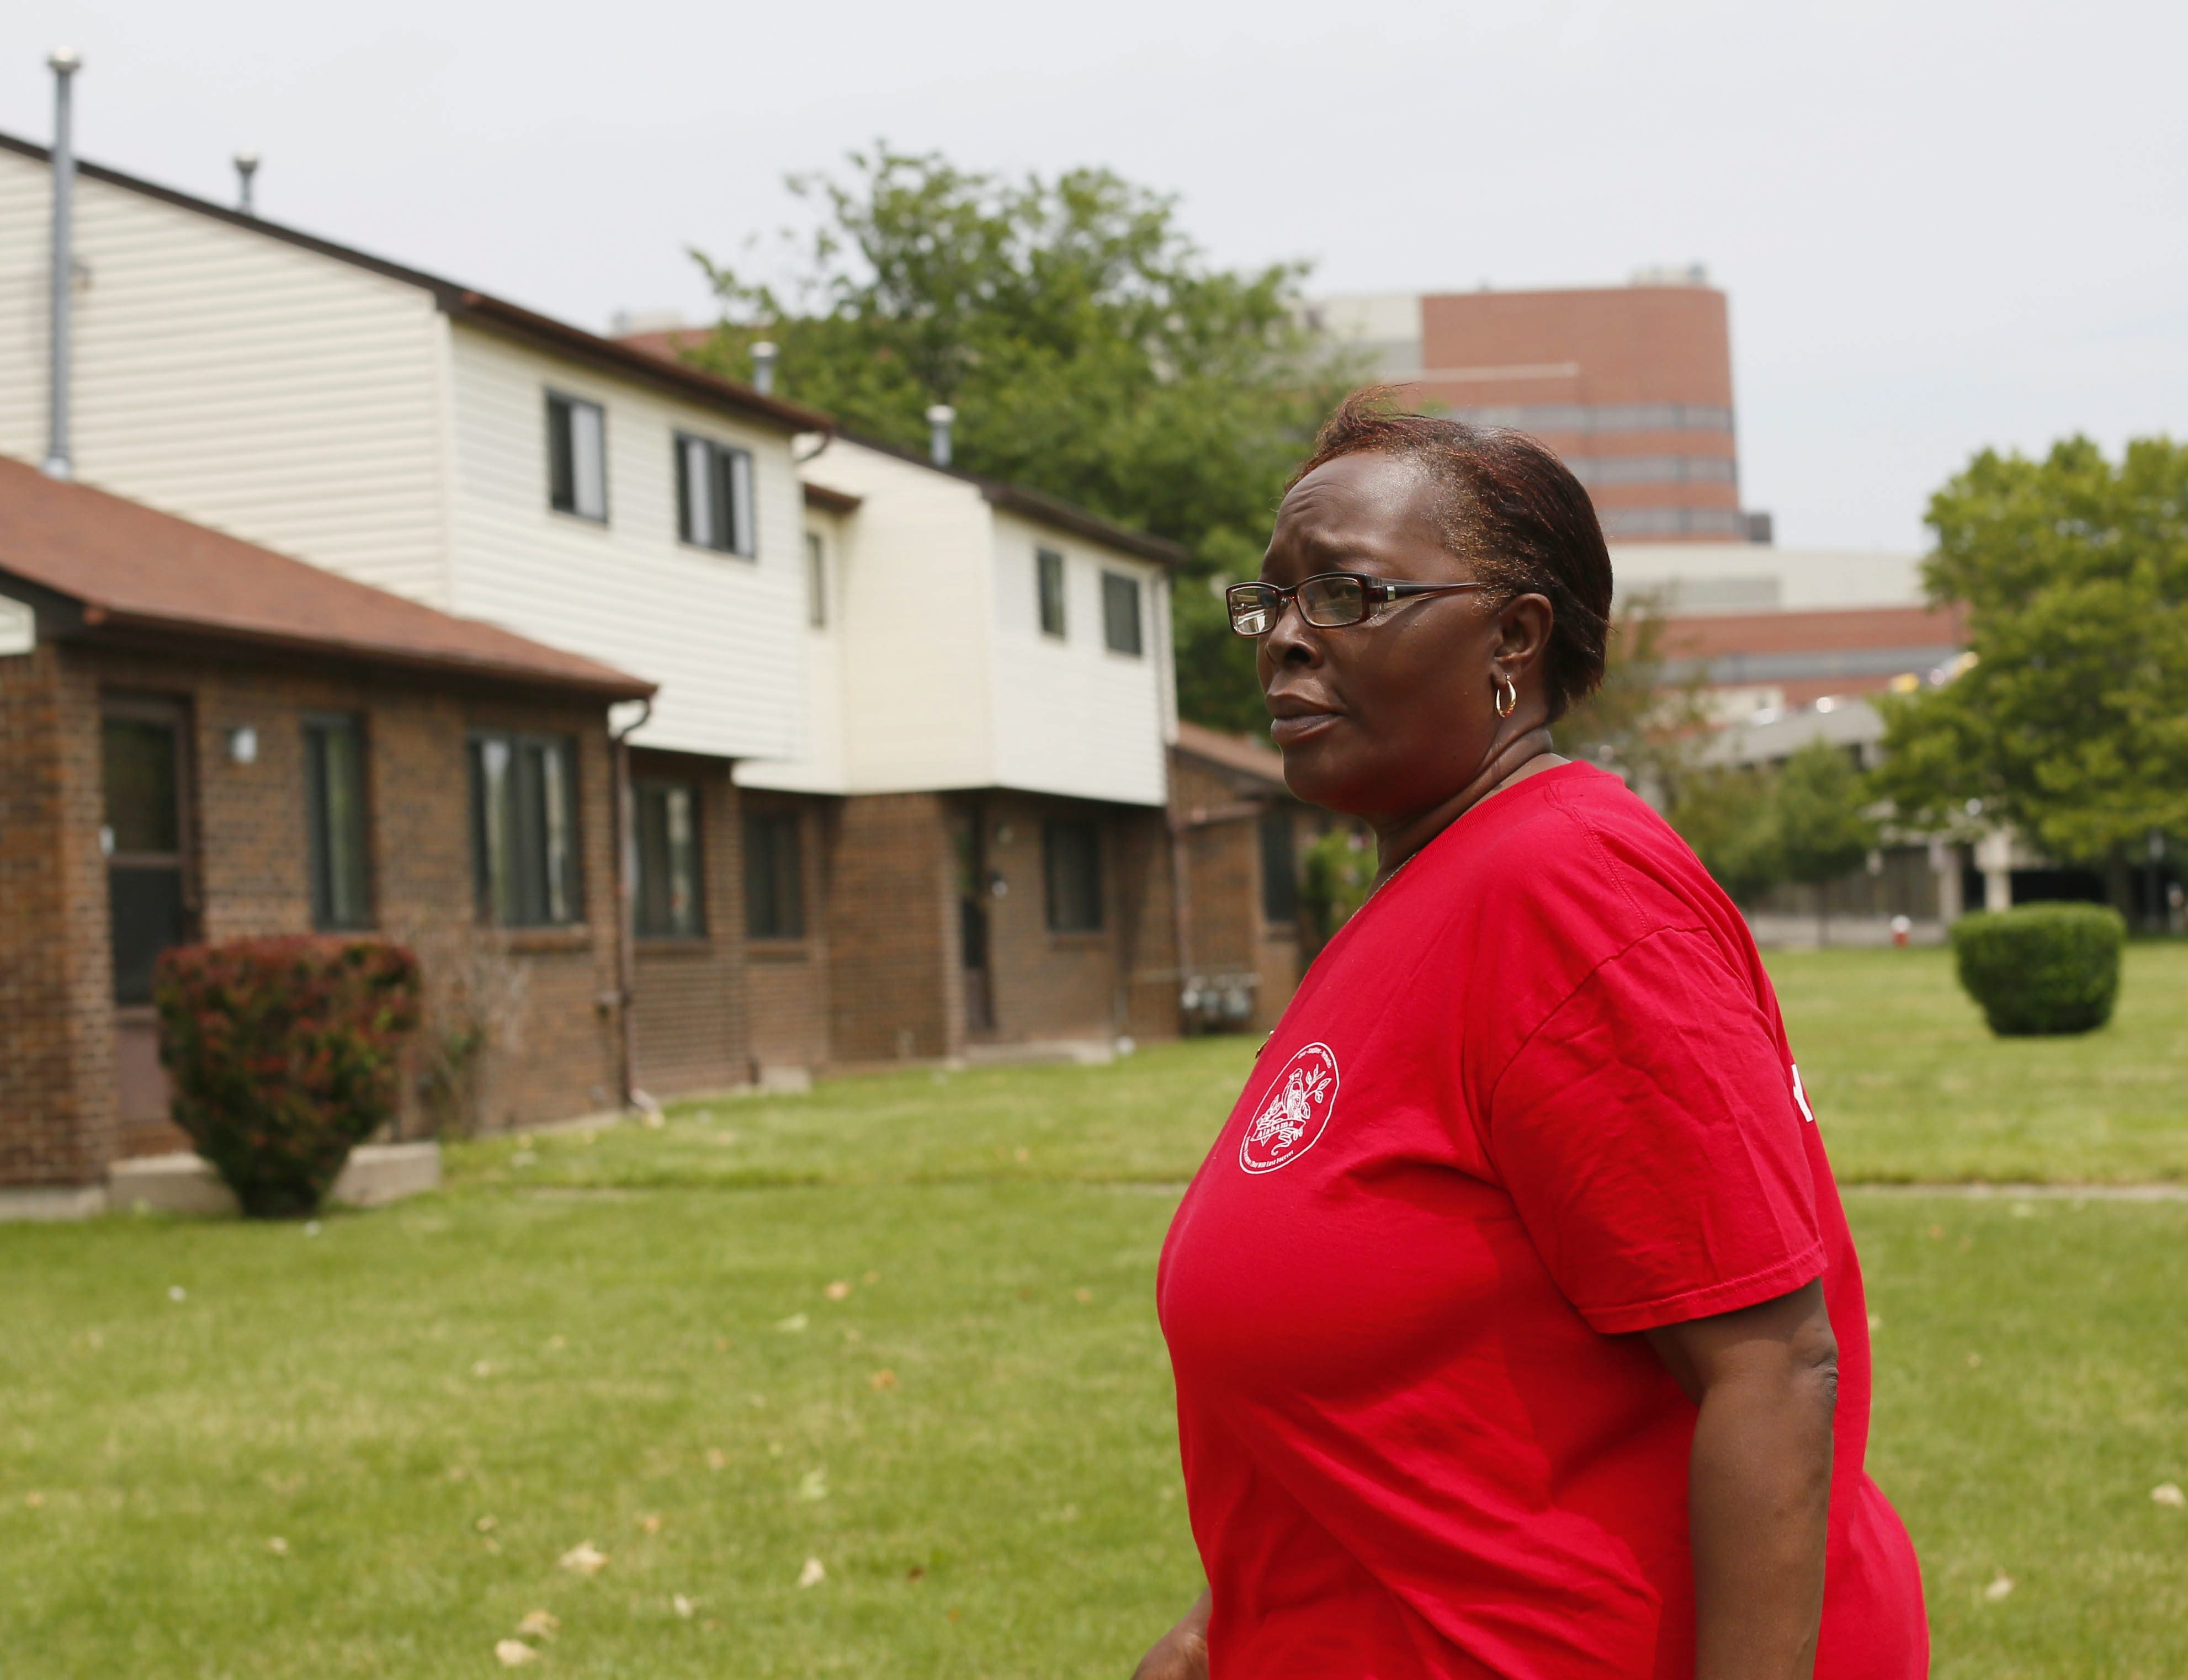 Lorraine Chambley has lived in McCarley Gardens for the last 18 years. If the complex is sold, she will have to find a new home. (Derek Gee/Buffalo News)